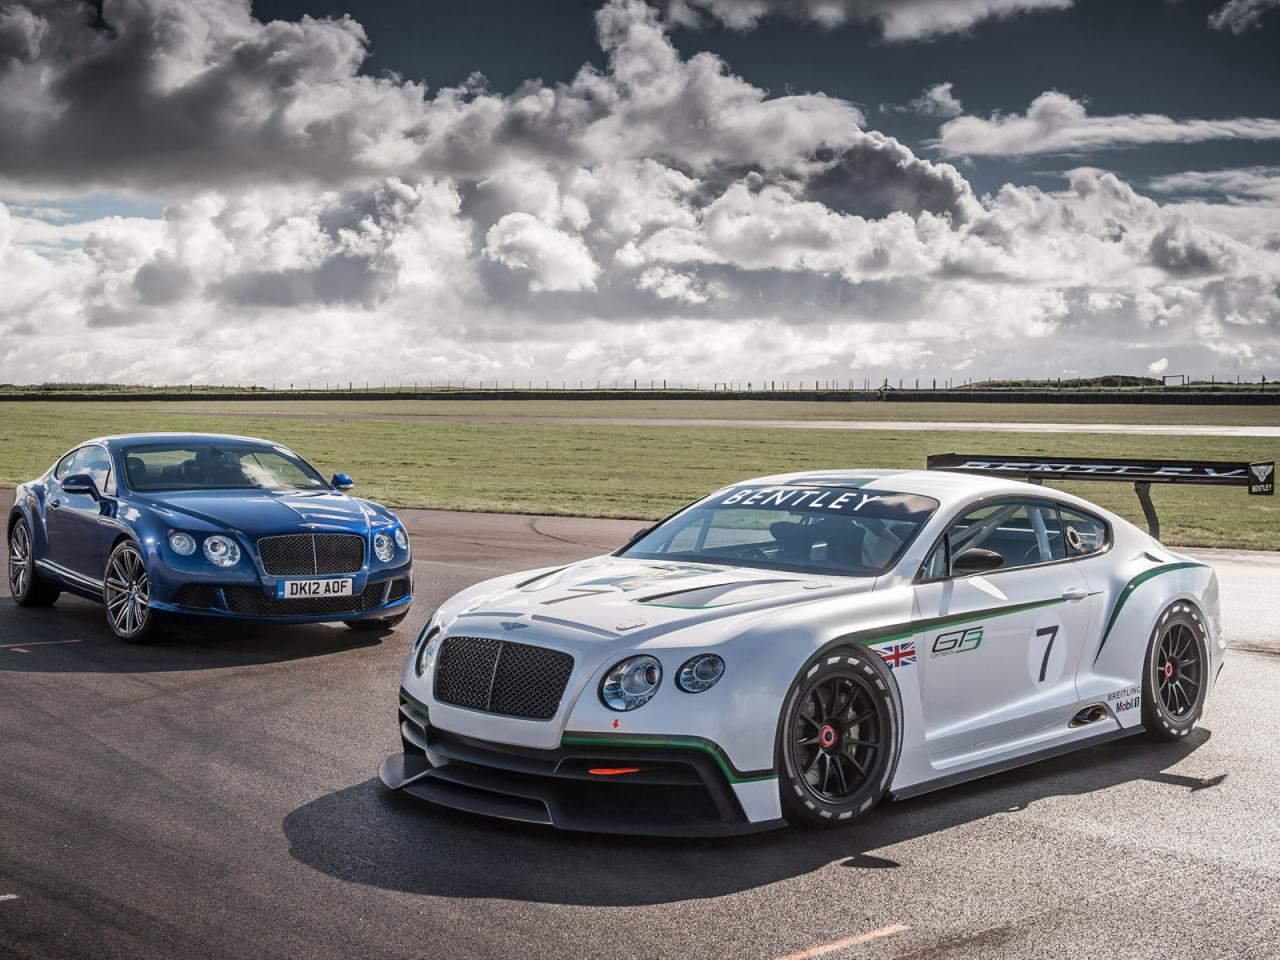 Bentley+Continental+GT3+1.jpg